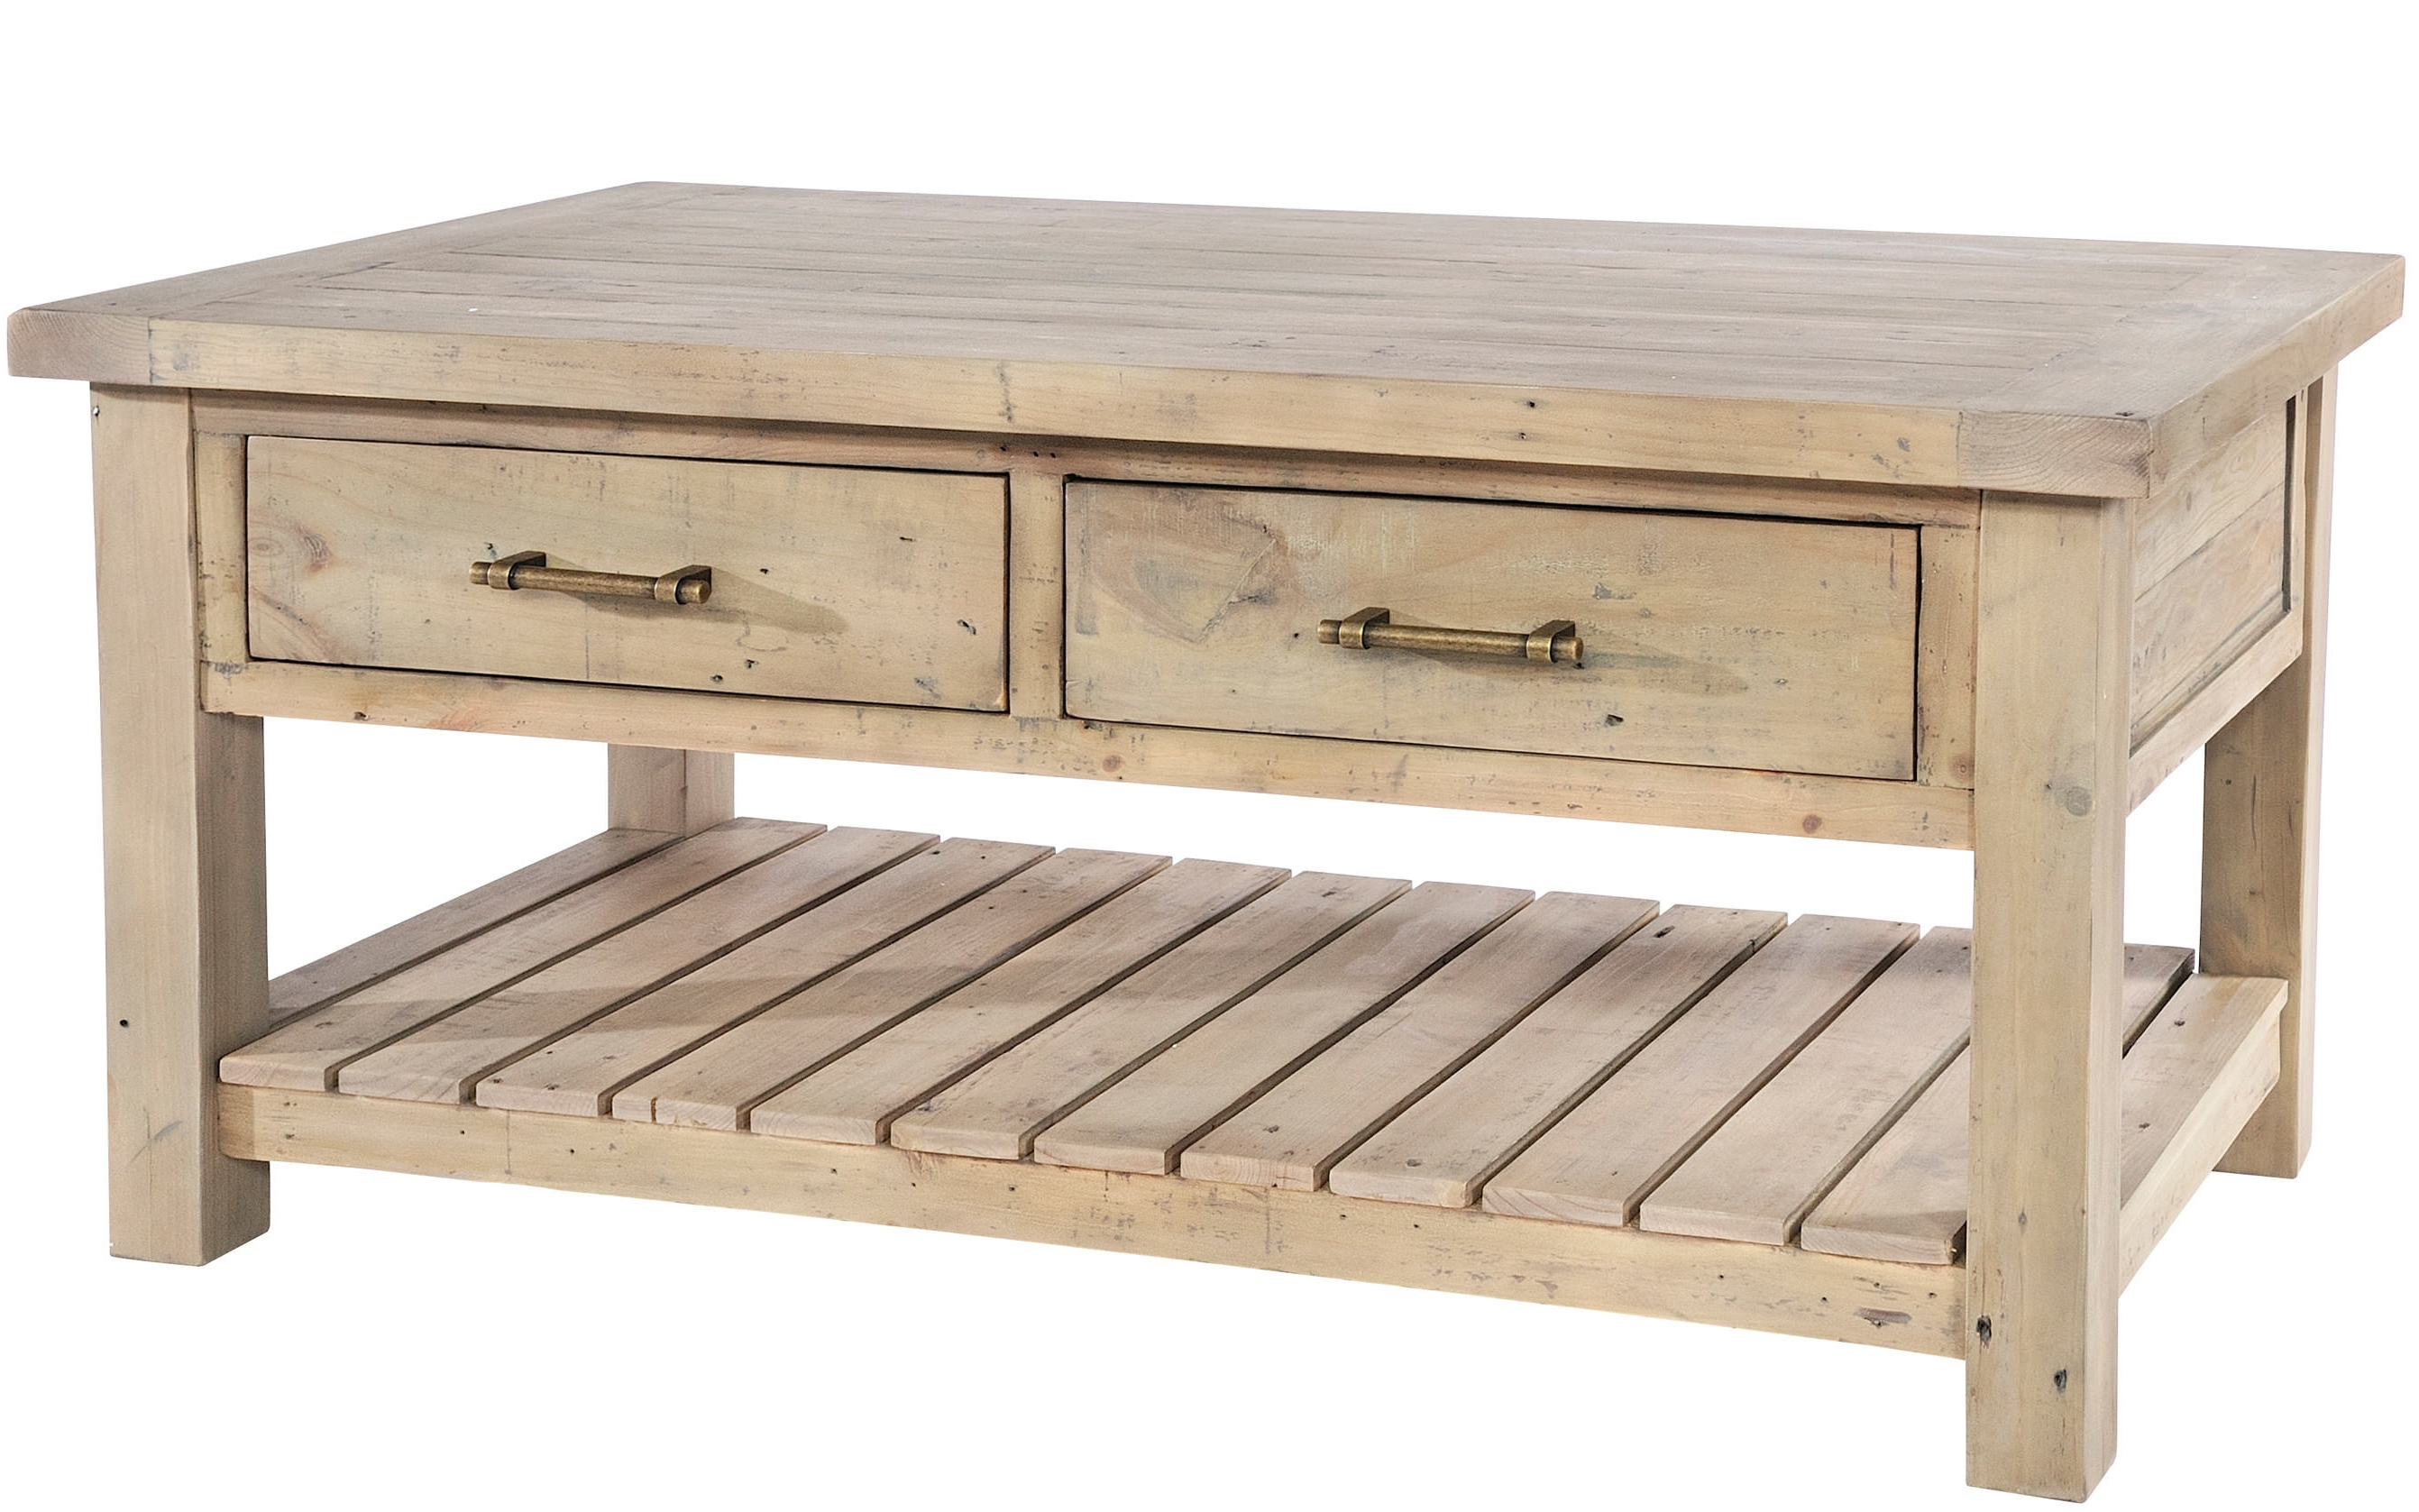 Widely Used Reclaimed Pine Coffee Tables Pertaining To Saltash Reclaimed Pine Coffee Table (View 20 of 20)